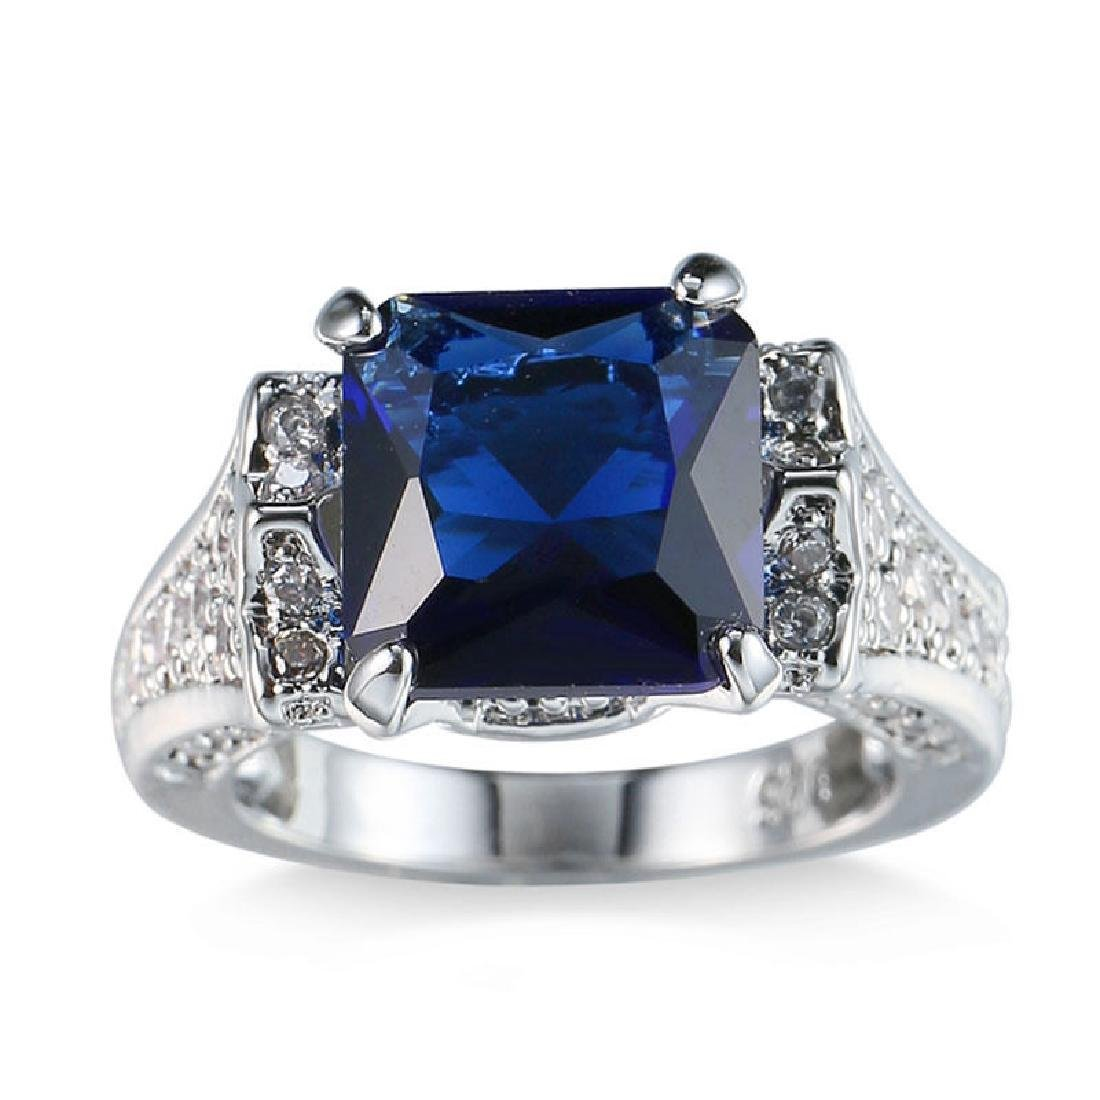 925 Solid Silver Blue Sapphire CZ Ring Wedding Size 9